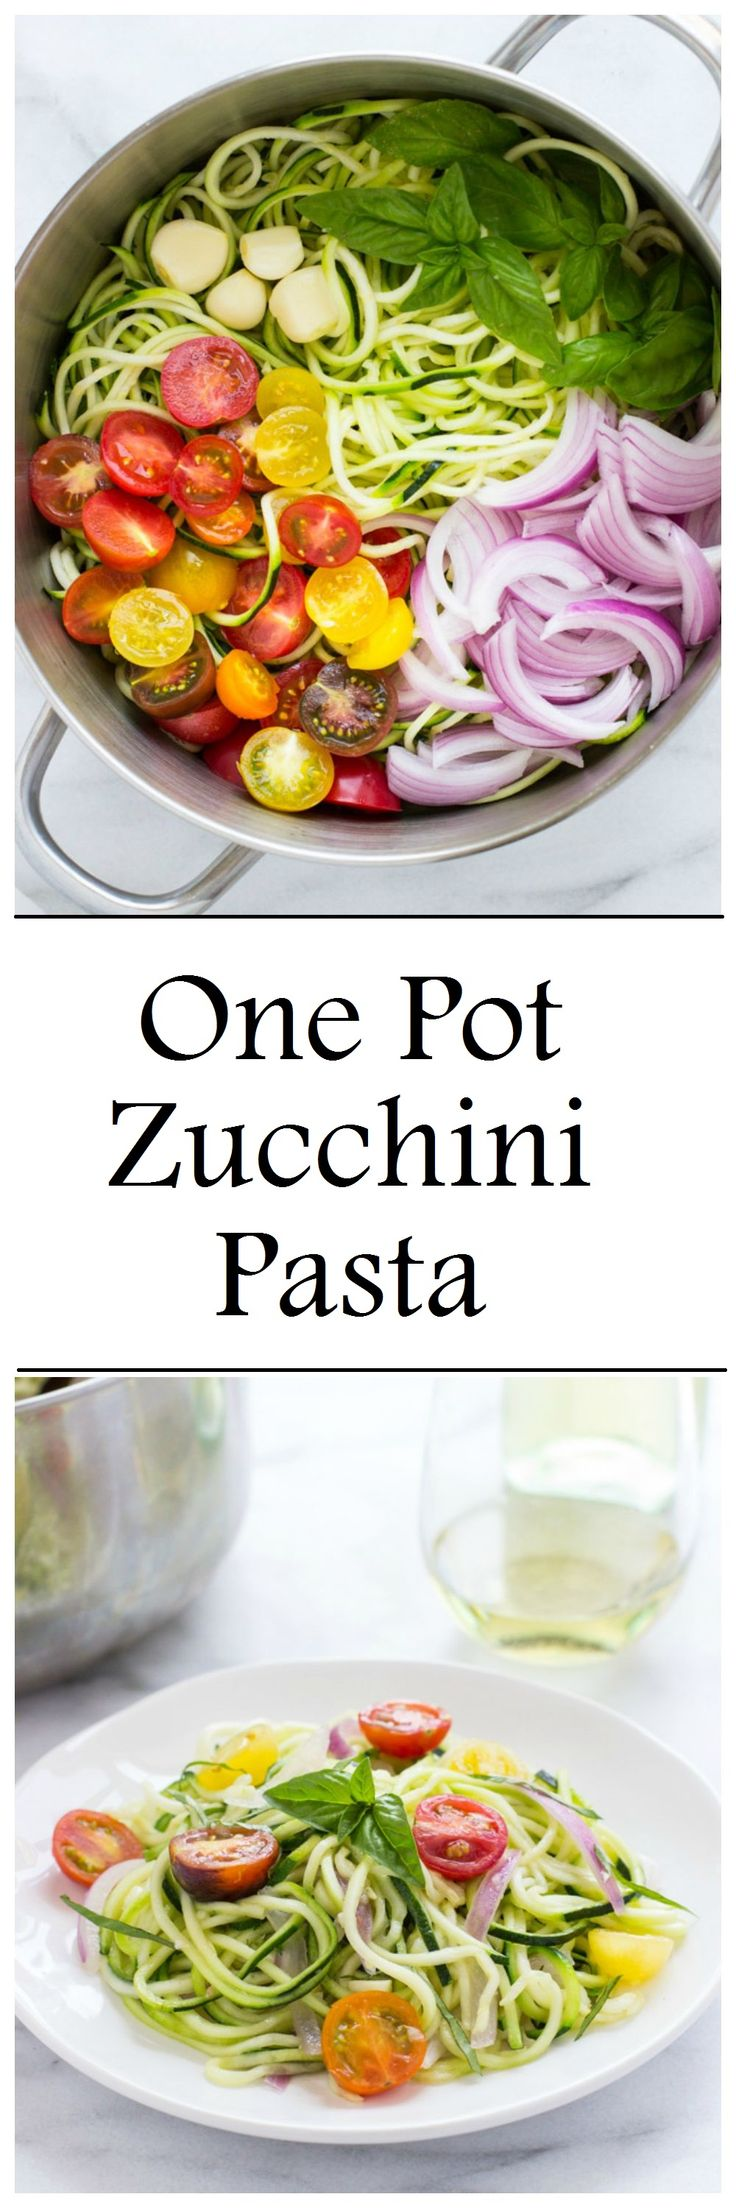 One Pot Zucchini Pasta- an easy, light and healthy meal made from summer's finest produce. Grain-free, gluten-free + it comes together in less than 20 minutes!